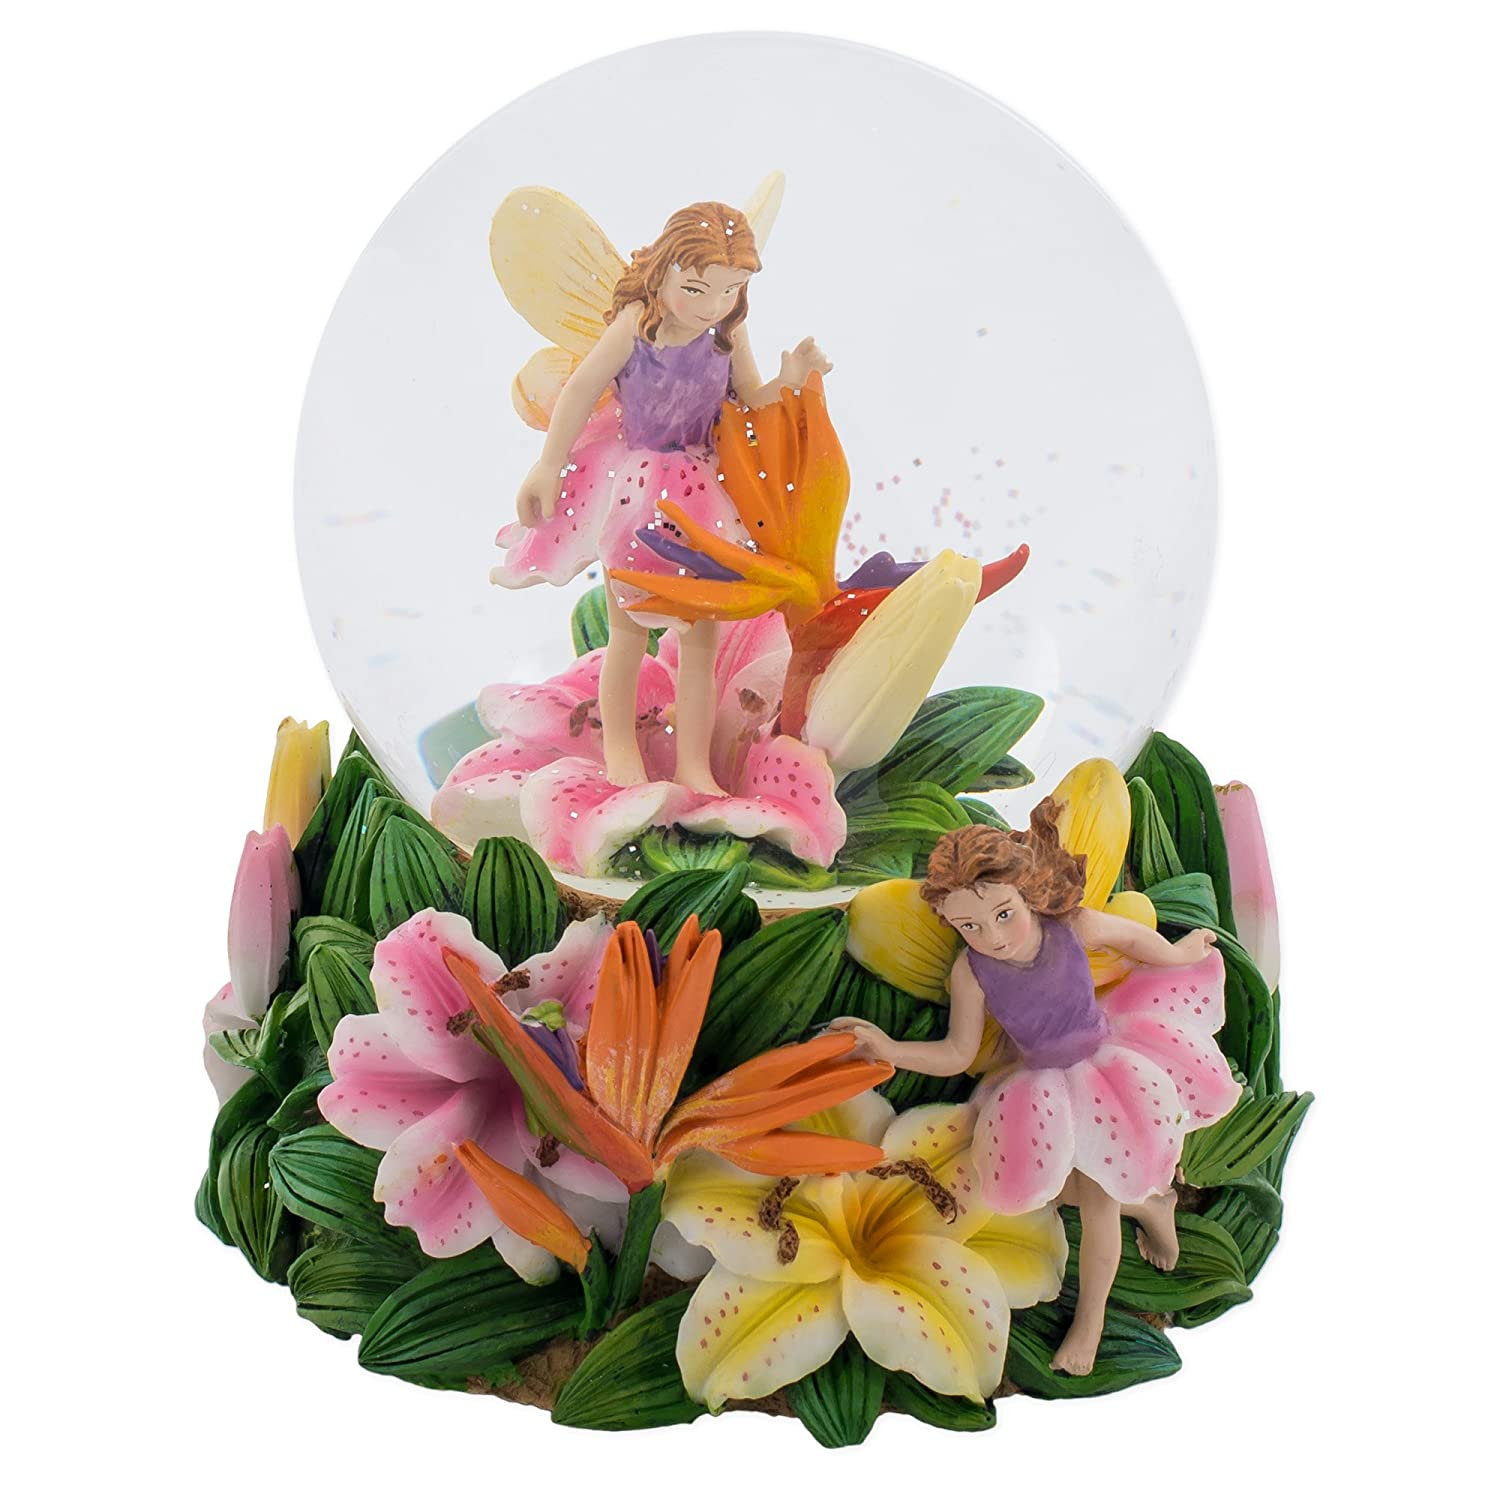 Fairies Walking on Tiger Lillies 100MM Music Water Globe Plays Tune Waltz of the Flowers Cadona International No Model